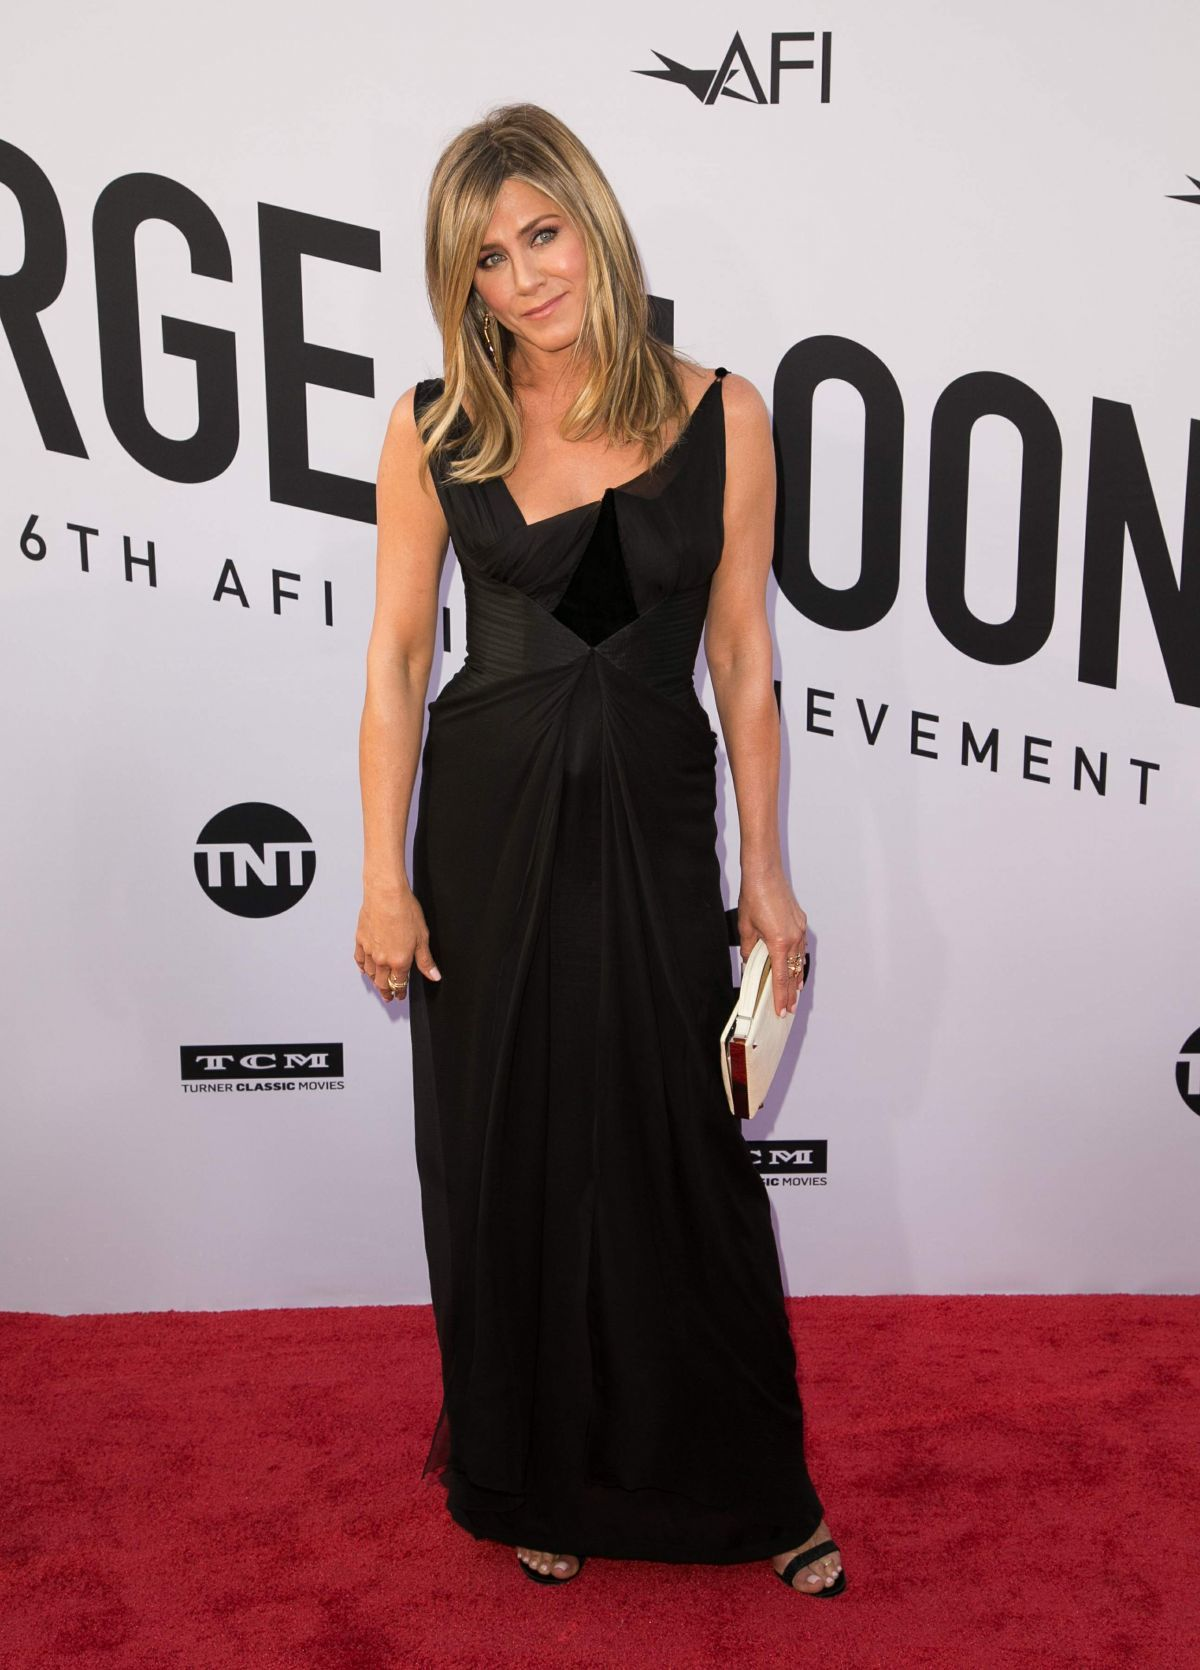 jennifer-aniston-at-american-film-institute-s-46th-life-achievement-award-gala-tribute-to-george-clooney-in-hollywood-06-07-2018-2-1613276733